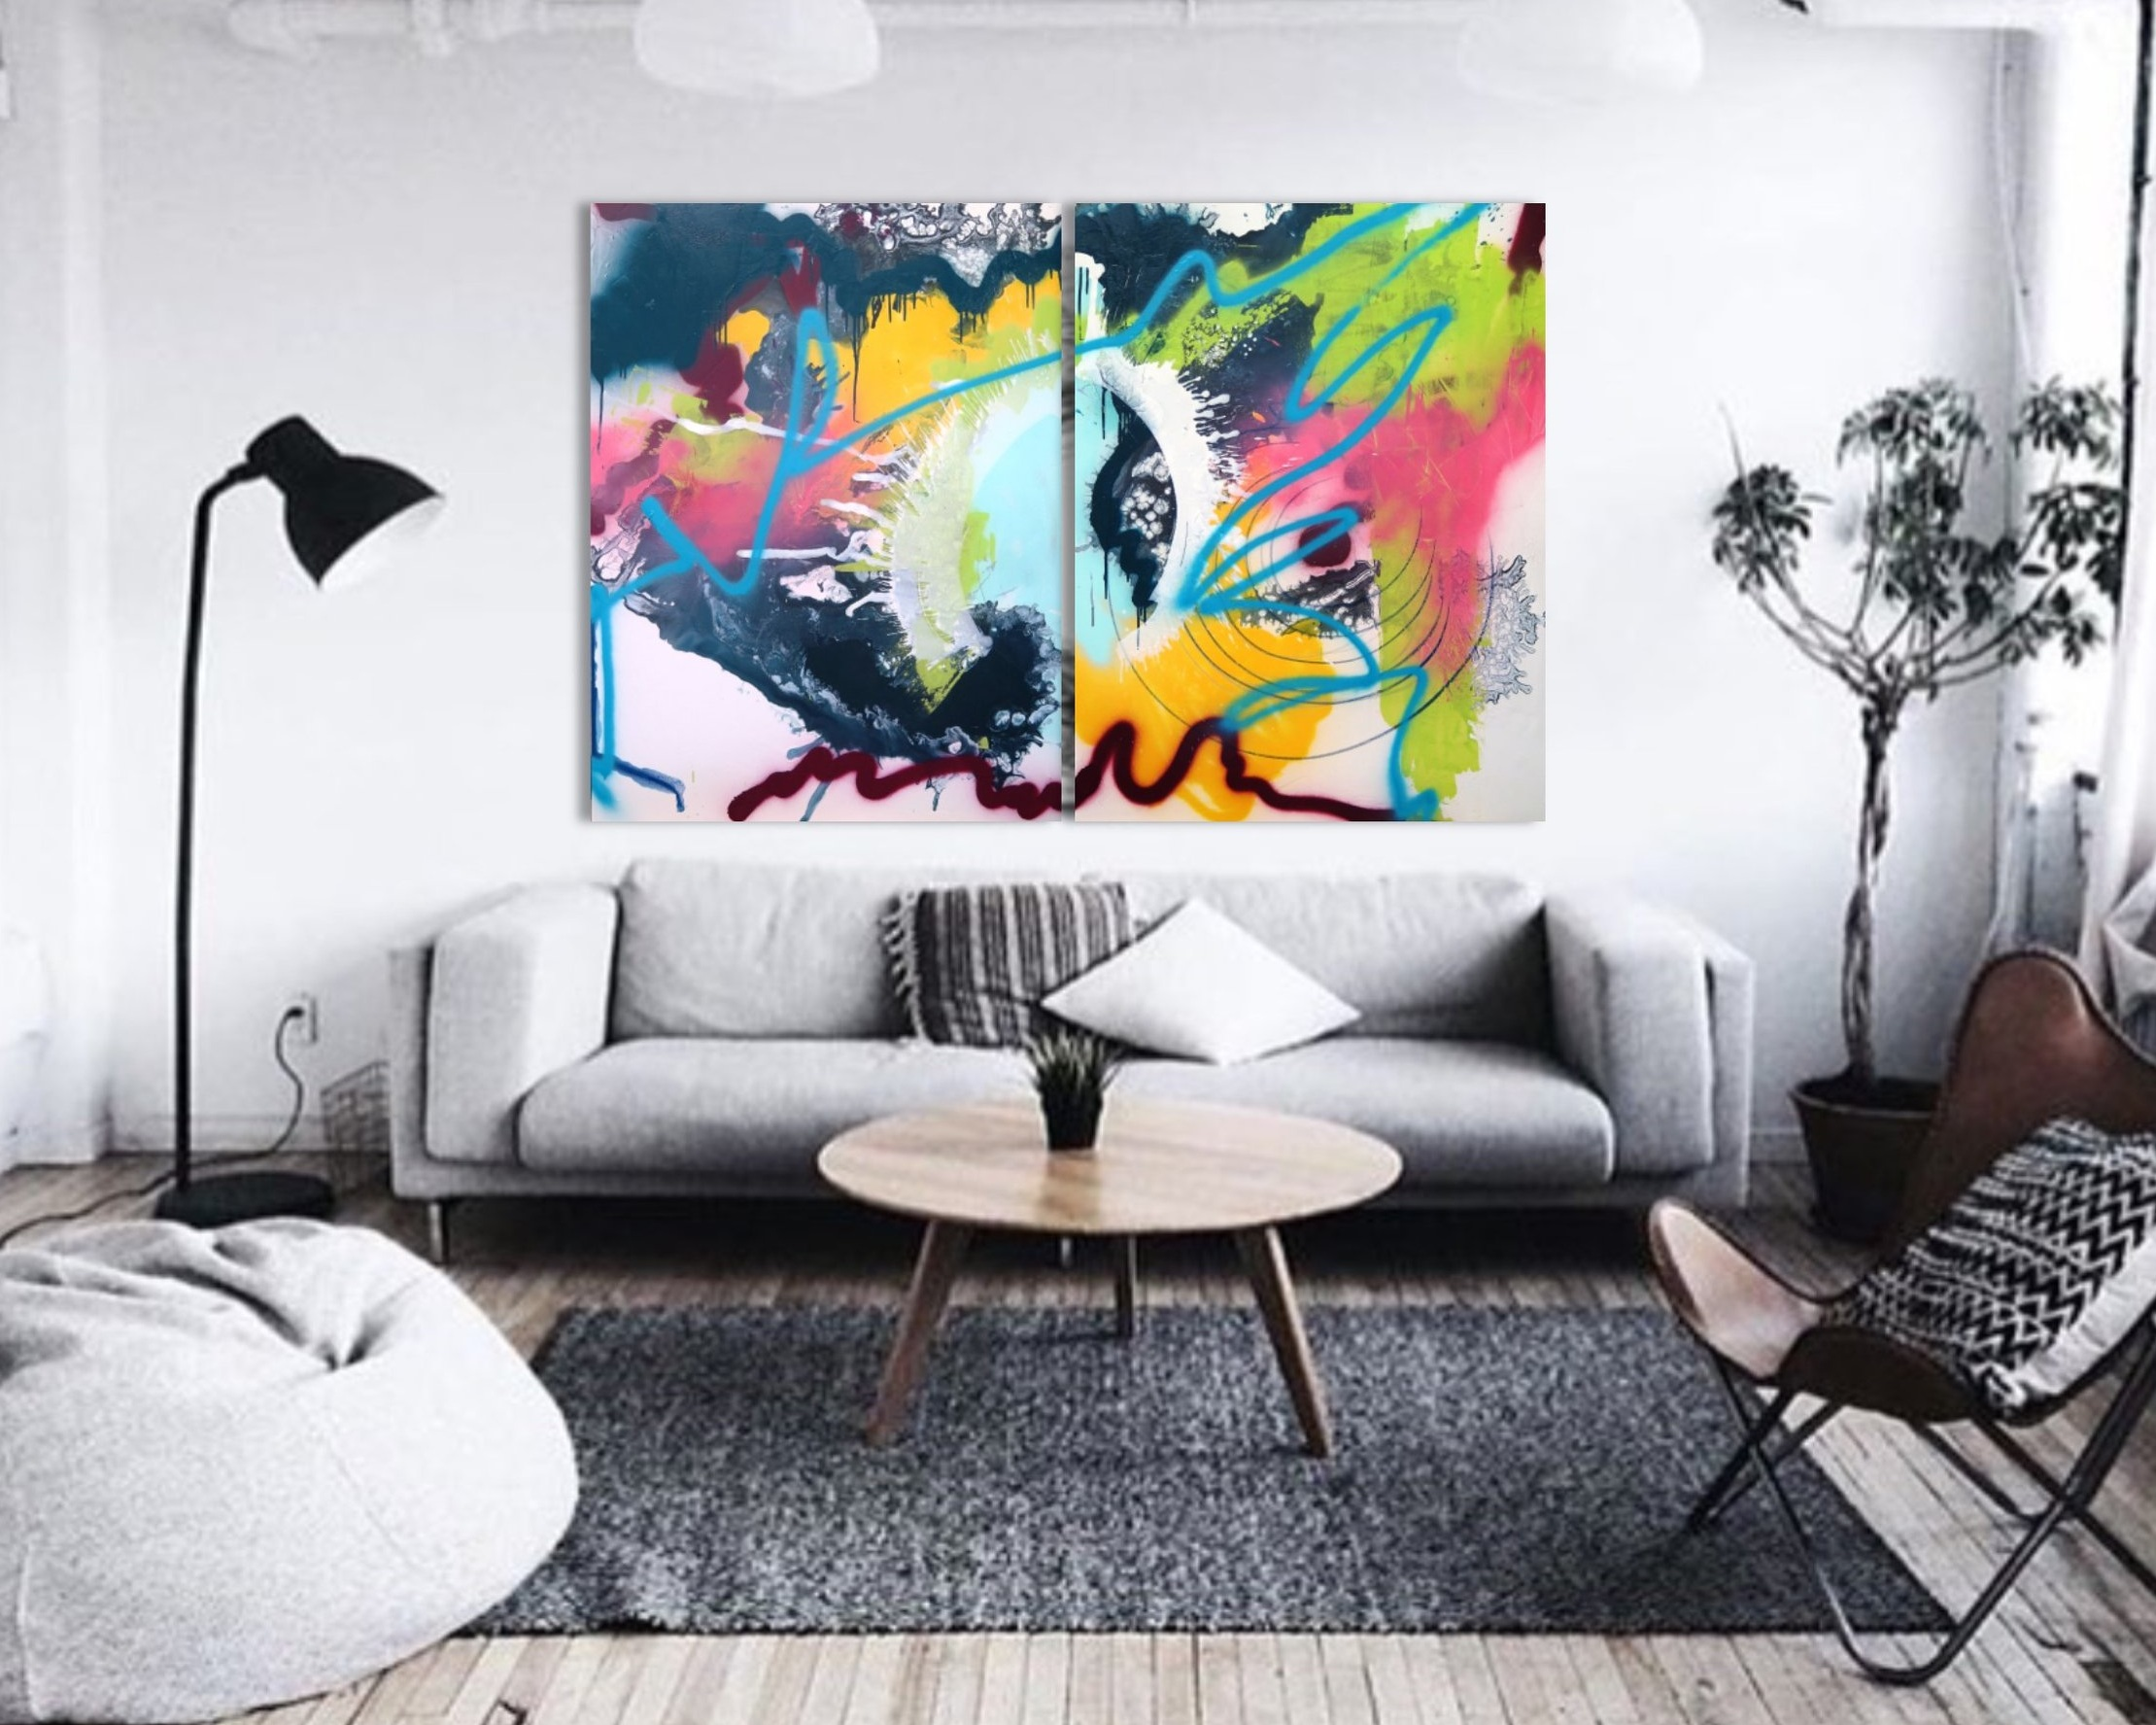 Charged - An over sized collection of mixed media works on paper and canvas full of boisterous color, reaching motions and high energy will revitalize the heart and invigorate the mind.Shop Charged Collection